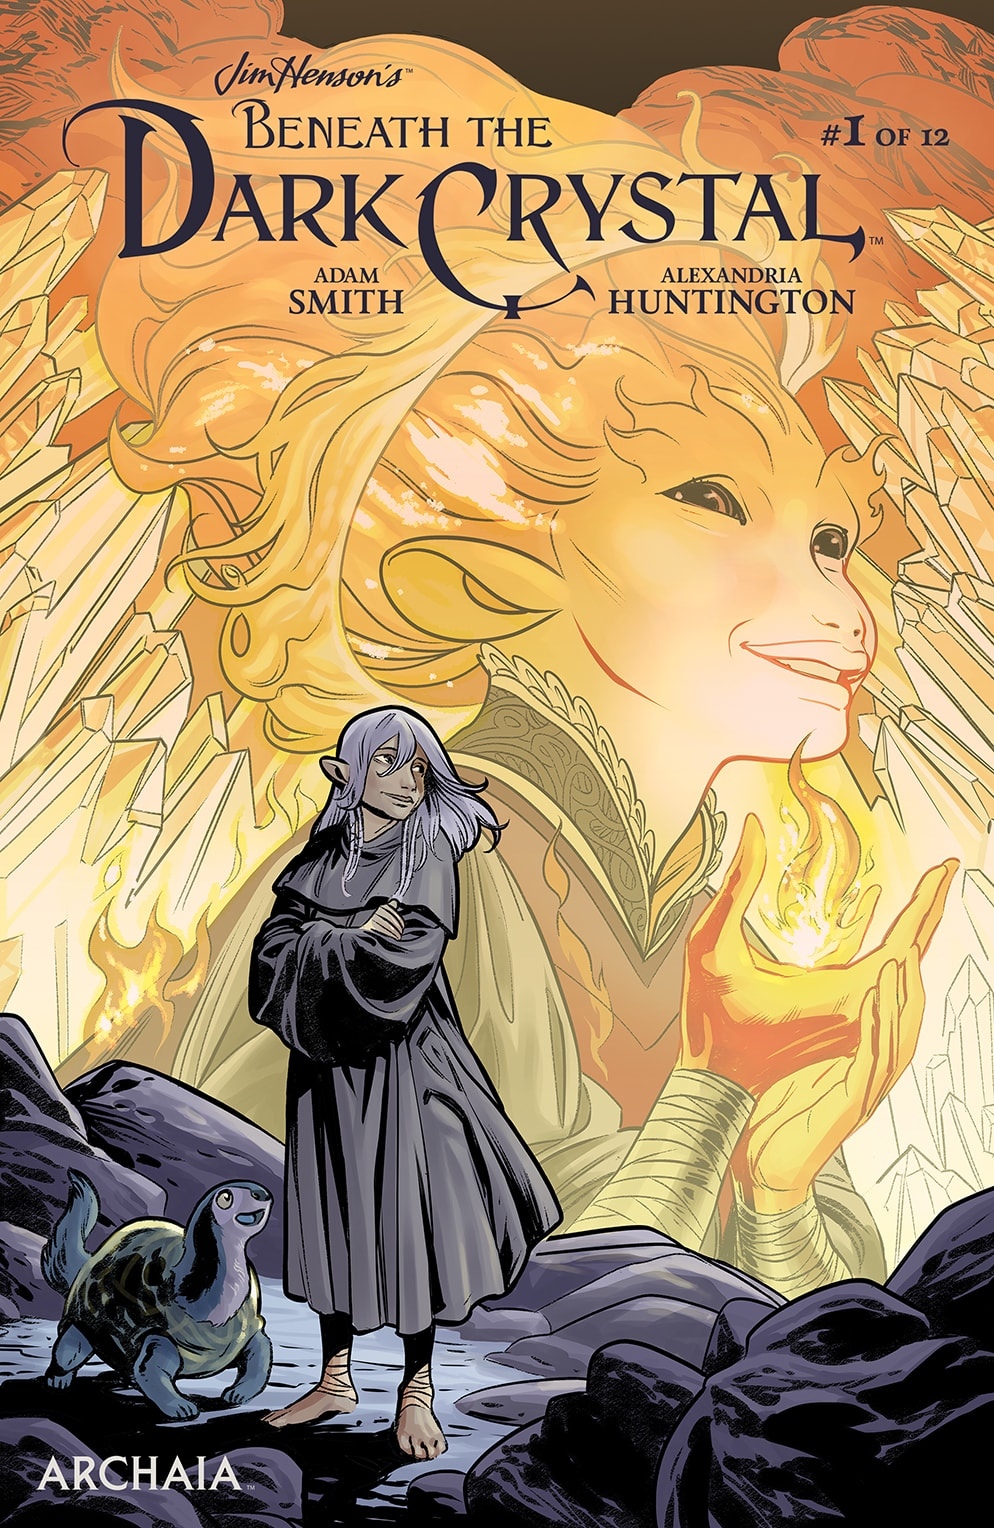 Jim Henson's Beneath the Dark Crystal #1 Review